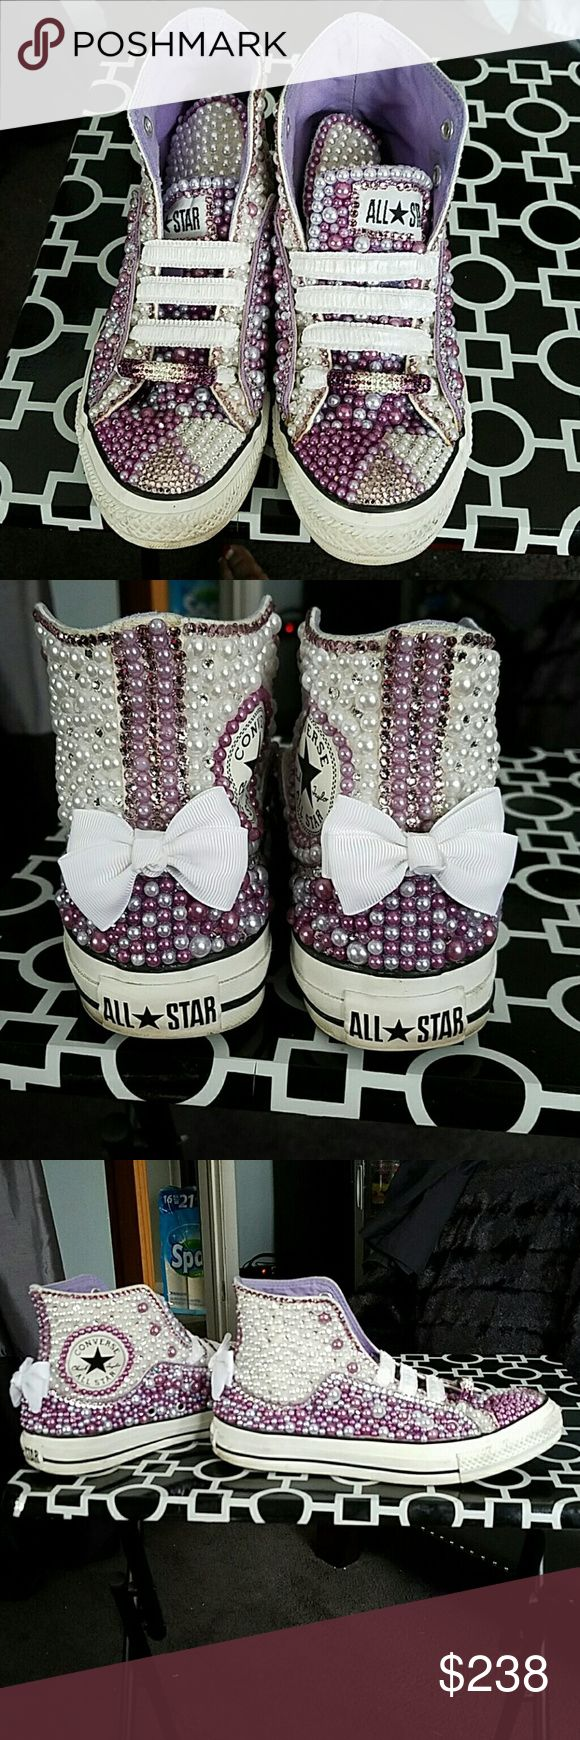 Custom Made Hi Lo Converse YES!! I made these...i love a junk shoe so i took a double hi/lo converse shoe and created this gem.. made with genuine swarovski crystals and pearls in purple and white.. both shoes ate fully decorated.. if u love attention these are for you..i took away the regular tie shoestrings and replaced them with elastic so the shoe can be pulled on to show the full effect of the shoe..size 5 in men's 7 in women's.. price is very firm Converse Shoes Sneakers